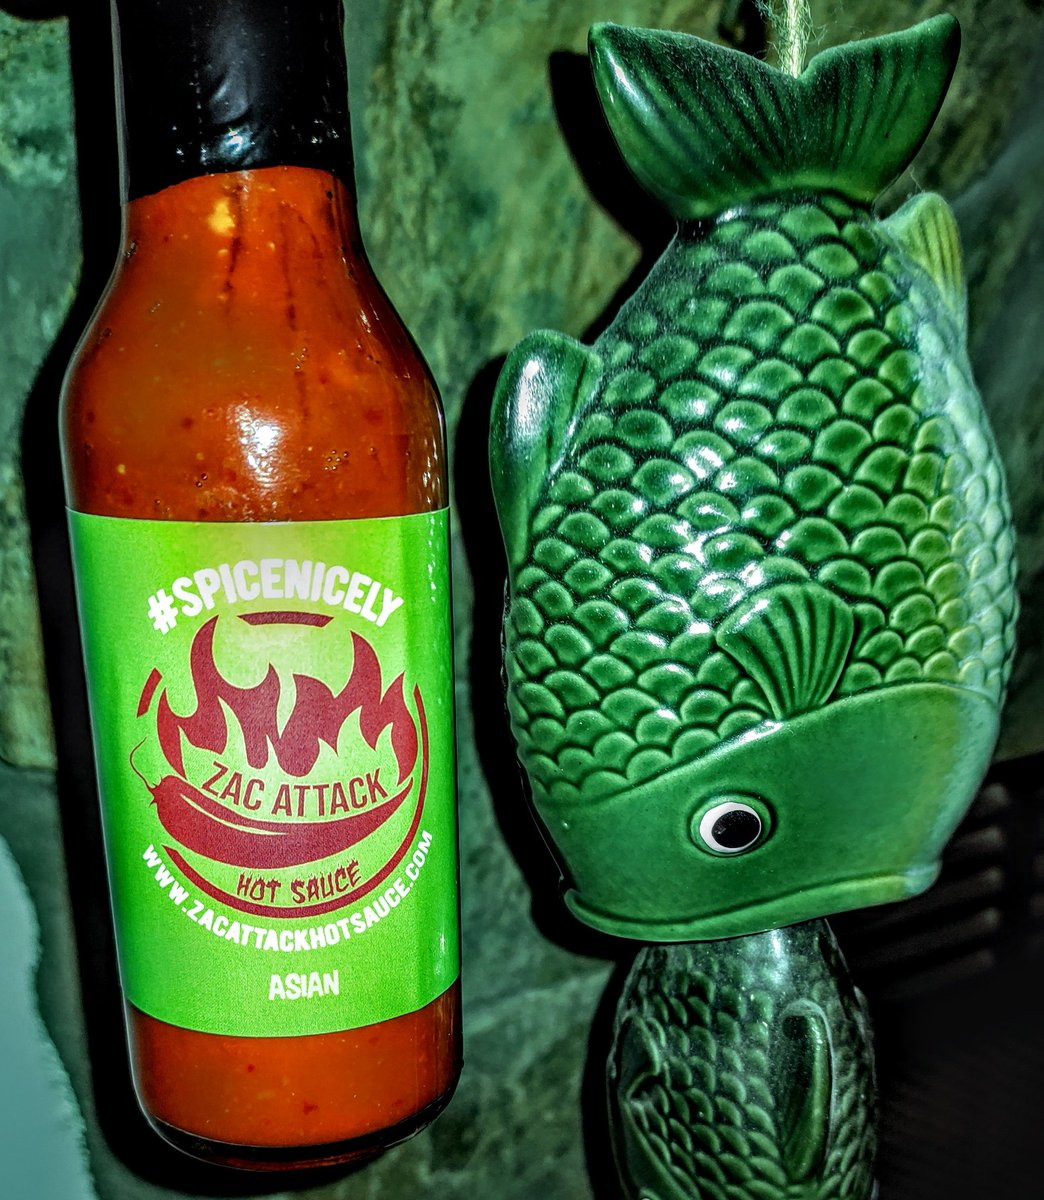 Asain hot sauce on your fish? Yes please #spicenicely #hotsauce #SmallBusiness #shopsmall #buylocal #asain #WednesdayMotivation #wednesdaythought #cooking #fish #recipe #Greatness #food #RecipeOfTheDay #RainyDay #spice #hot #delicious #green #yum #EatLocal #ordernow #homemade